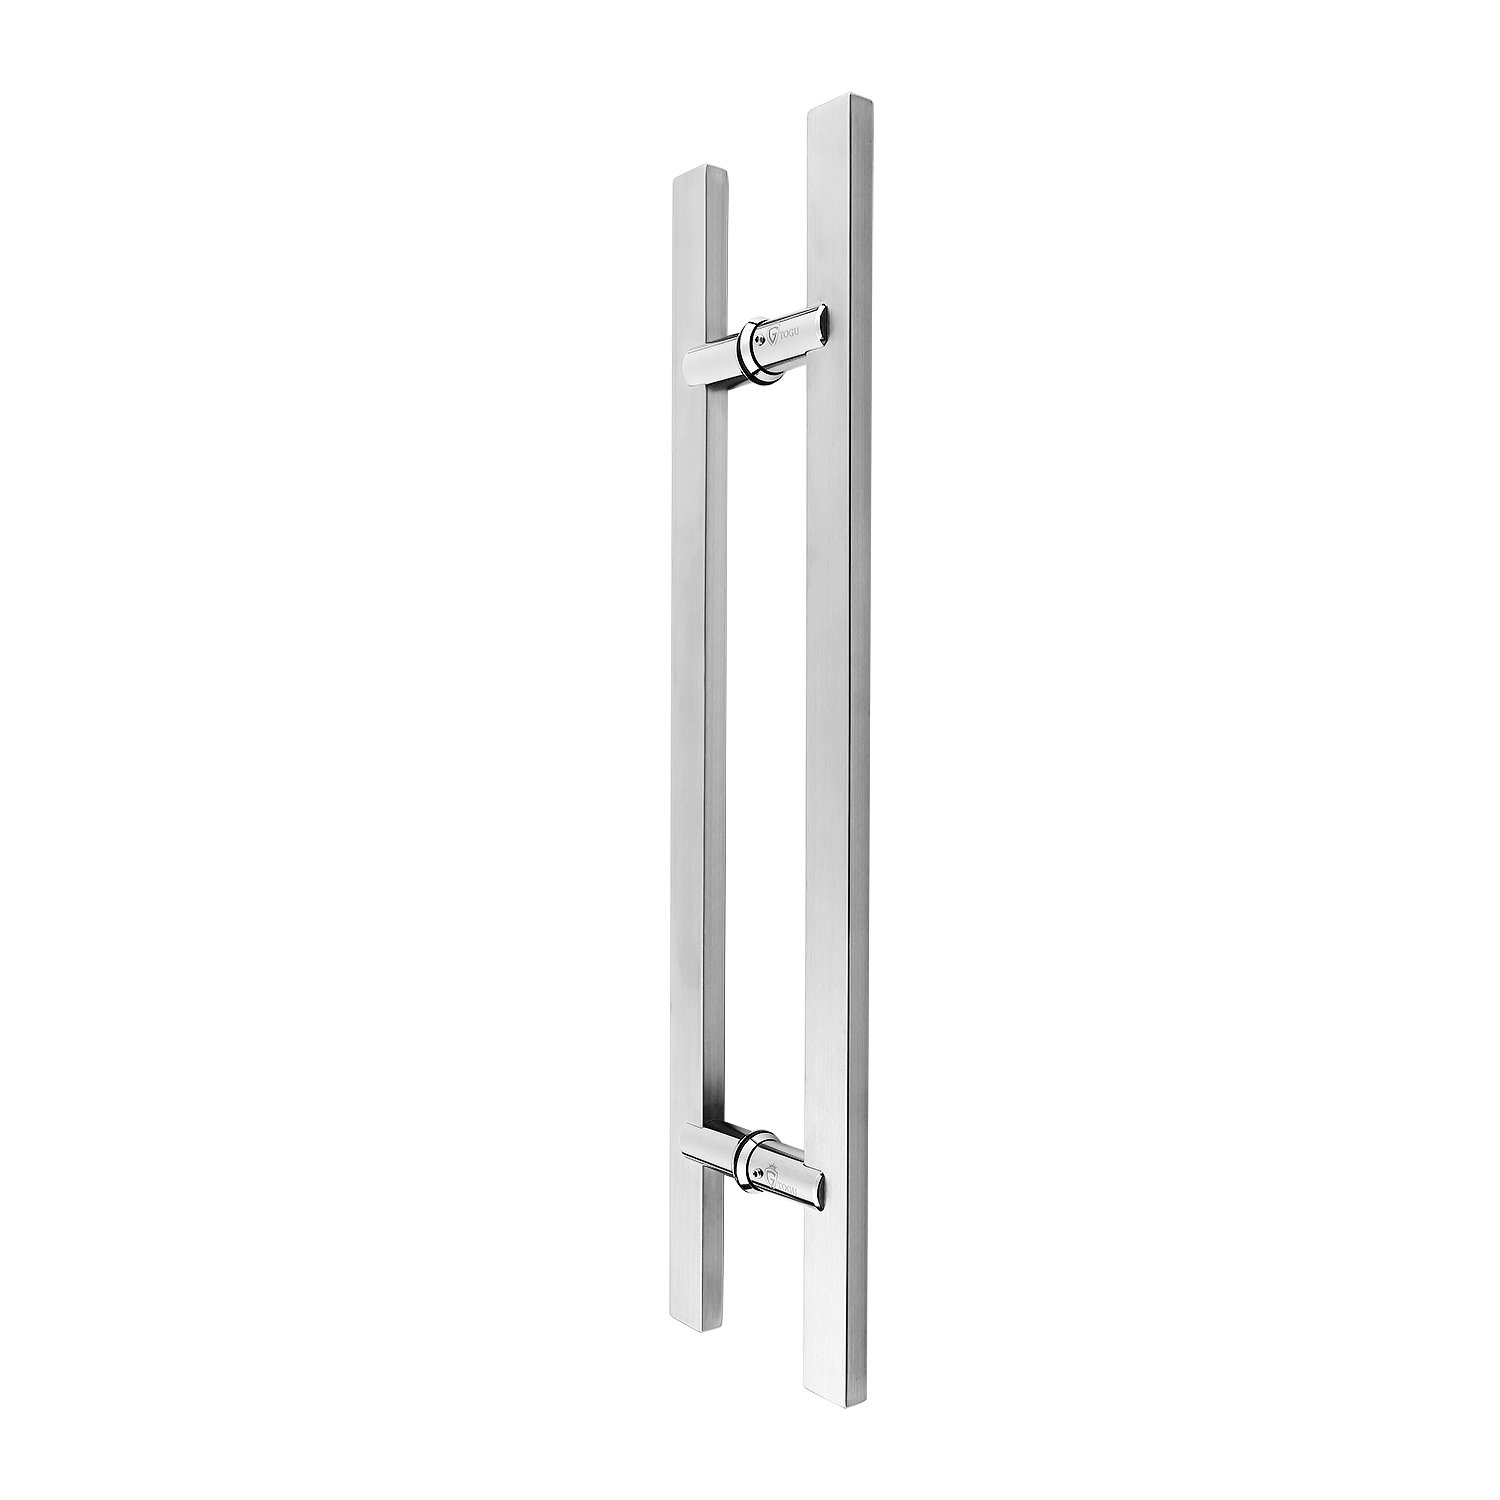 TOGU TG-6017 12 inches Length Square/Rectangle H-shape Heavy-duty Stainless Steel 304 Push Pull Door Handle/Barn Door Pull Handle/Glass Pulls, Full Brushed Stainless Steel Finish